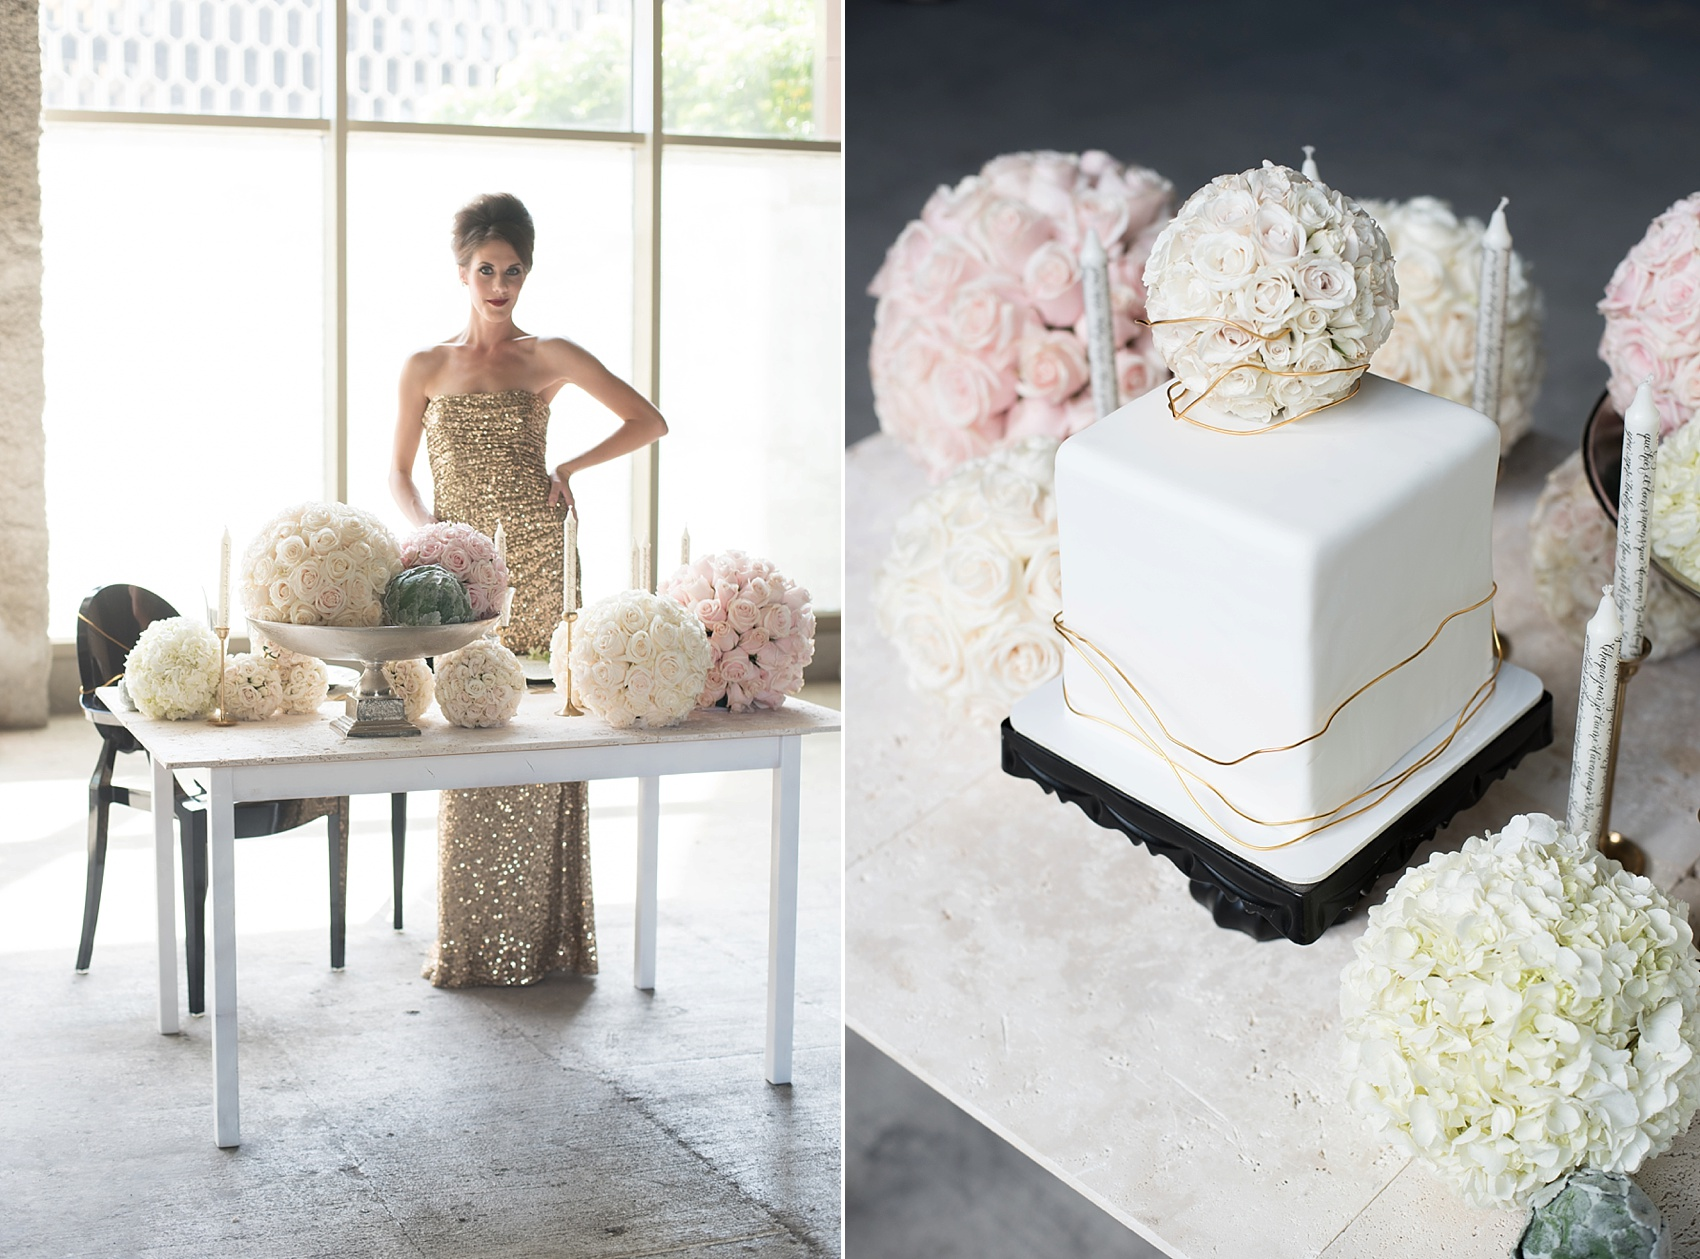 White square cake captured by destination wedding photographer Mikkel Paige captures a glamorous industrial bridal session in Hawaii with Burnett's Boards and Moana Events.